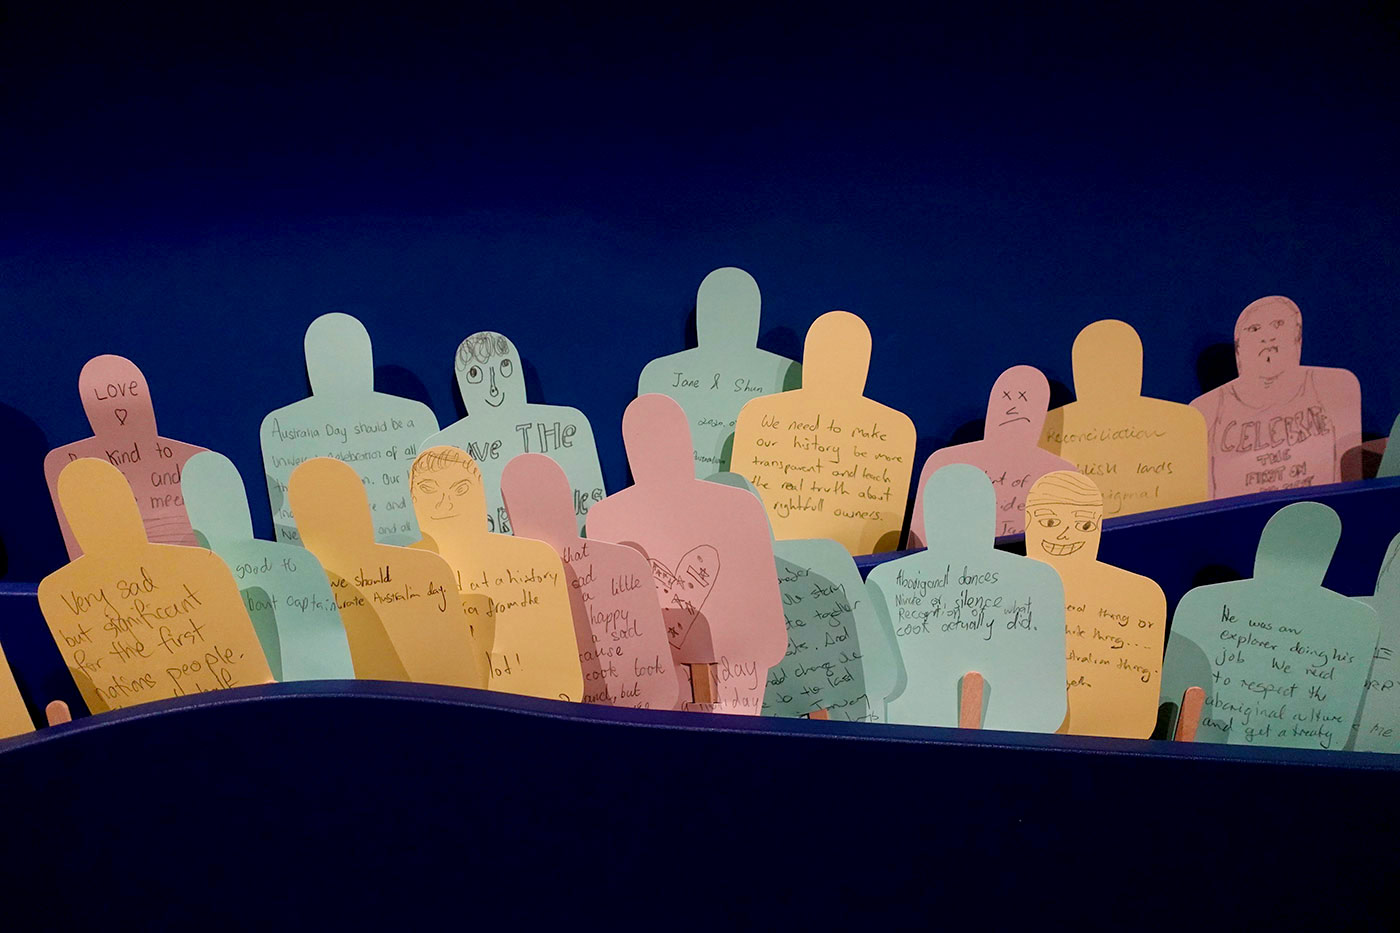 Exhibition display featuring multiple pieces of coloured paper cut out in the shape of people - some with faces - with hand written messages.